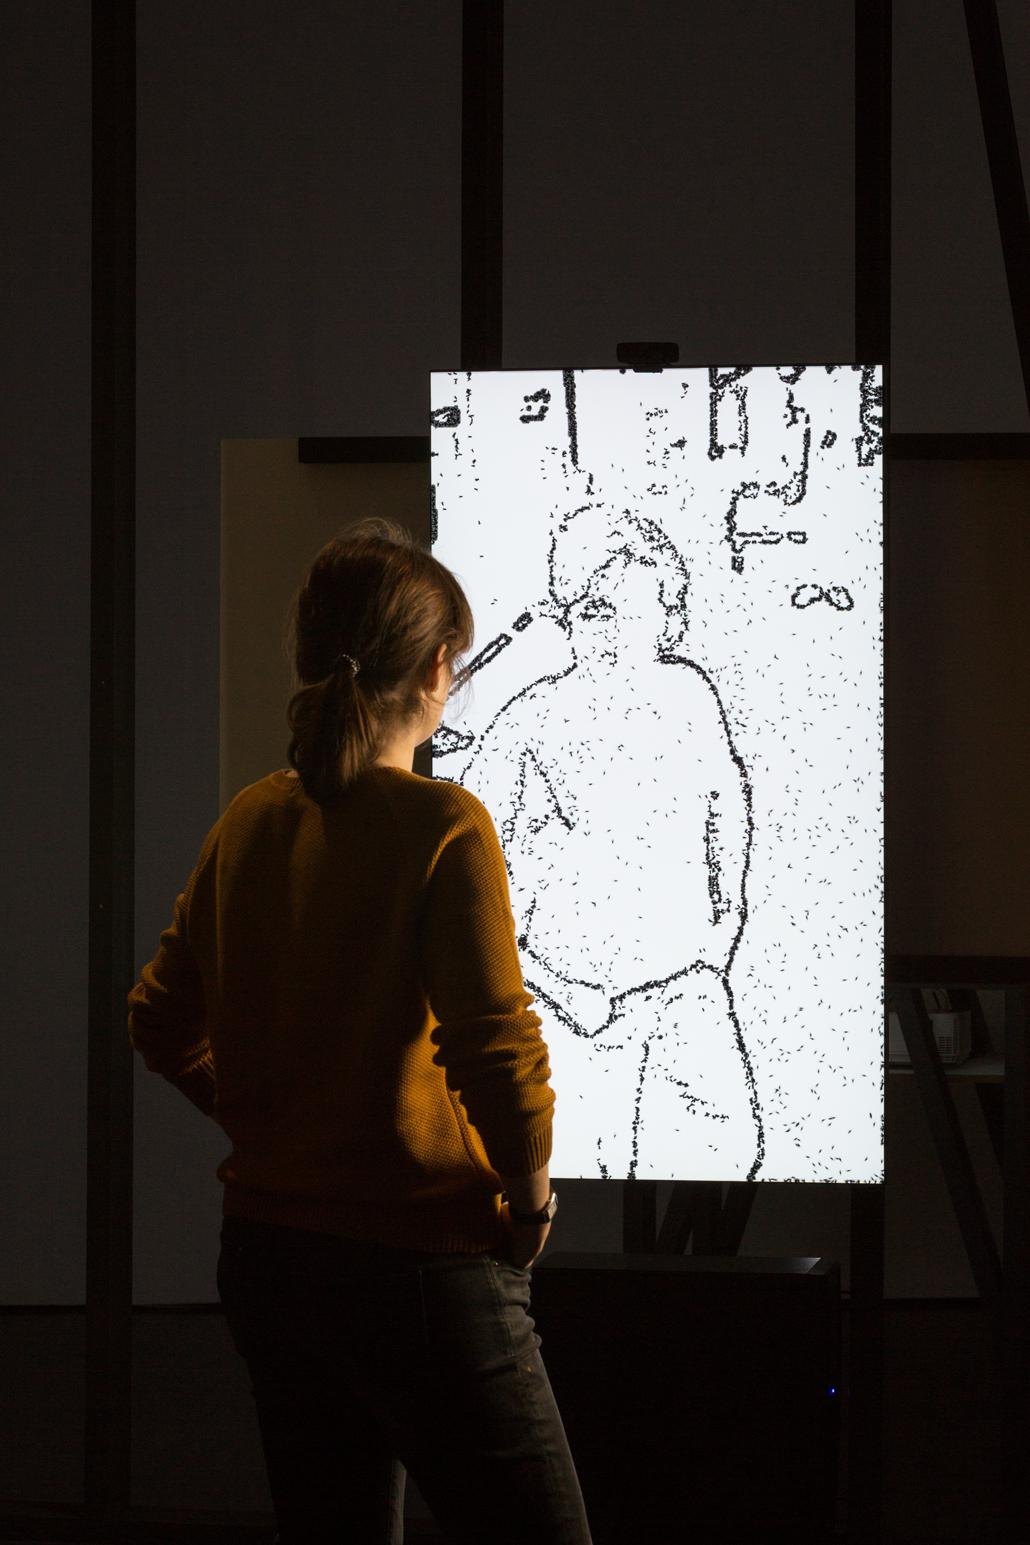 A person stands in front of a drawing of a person